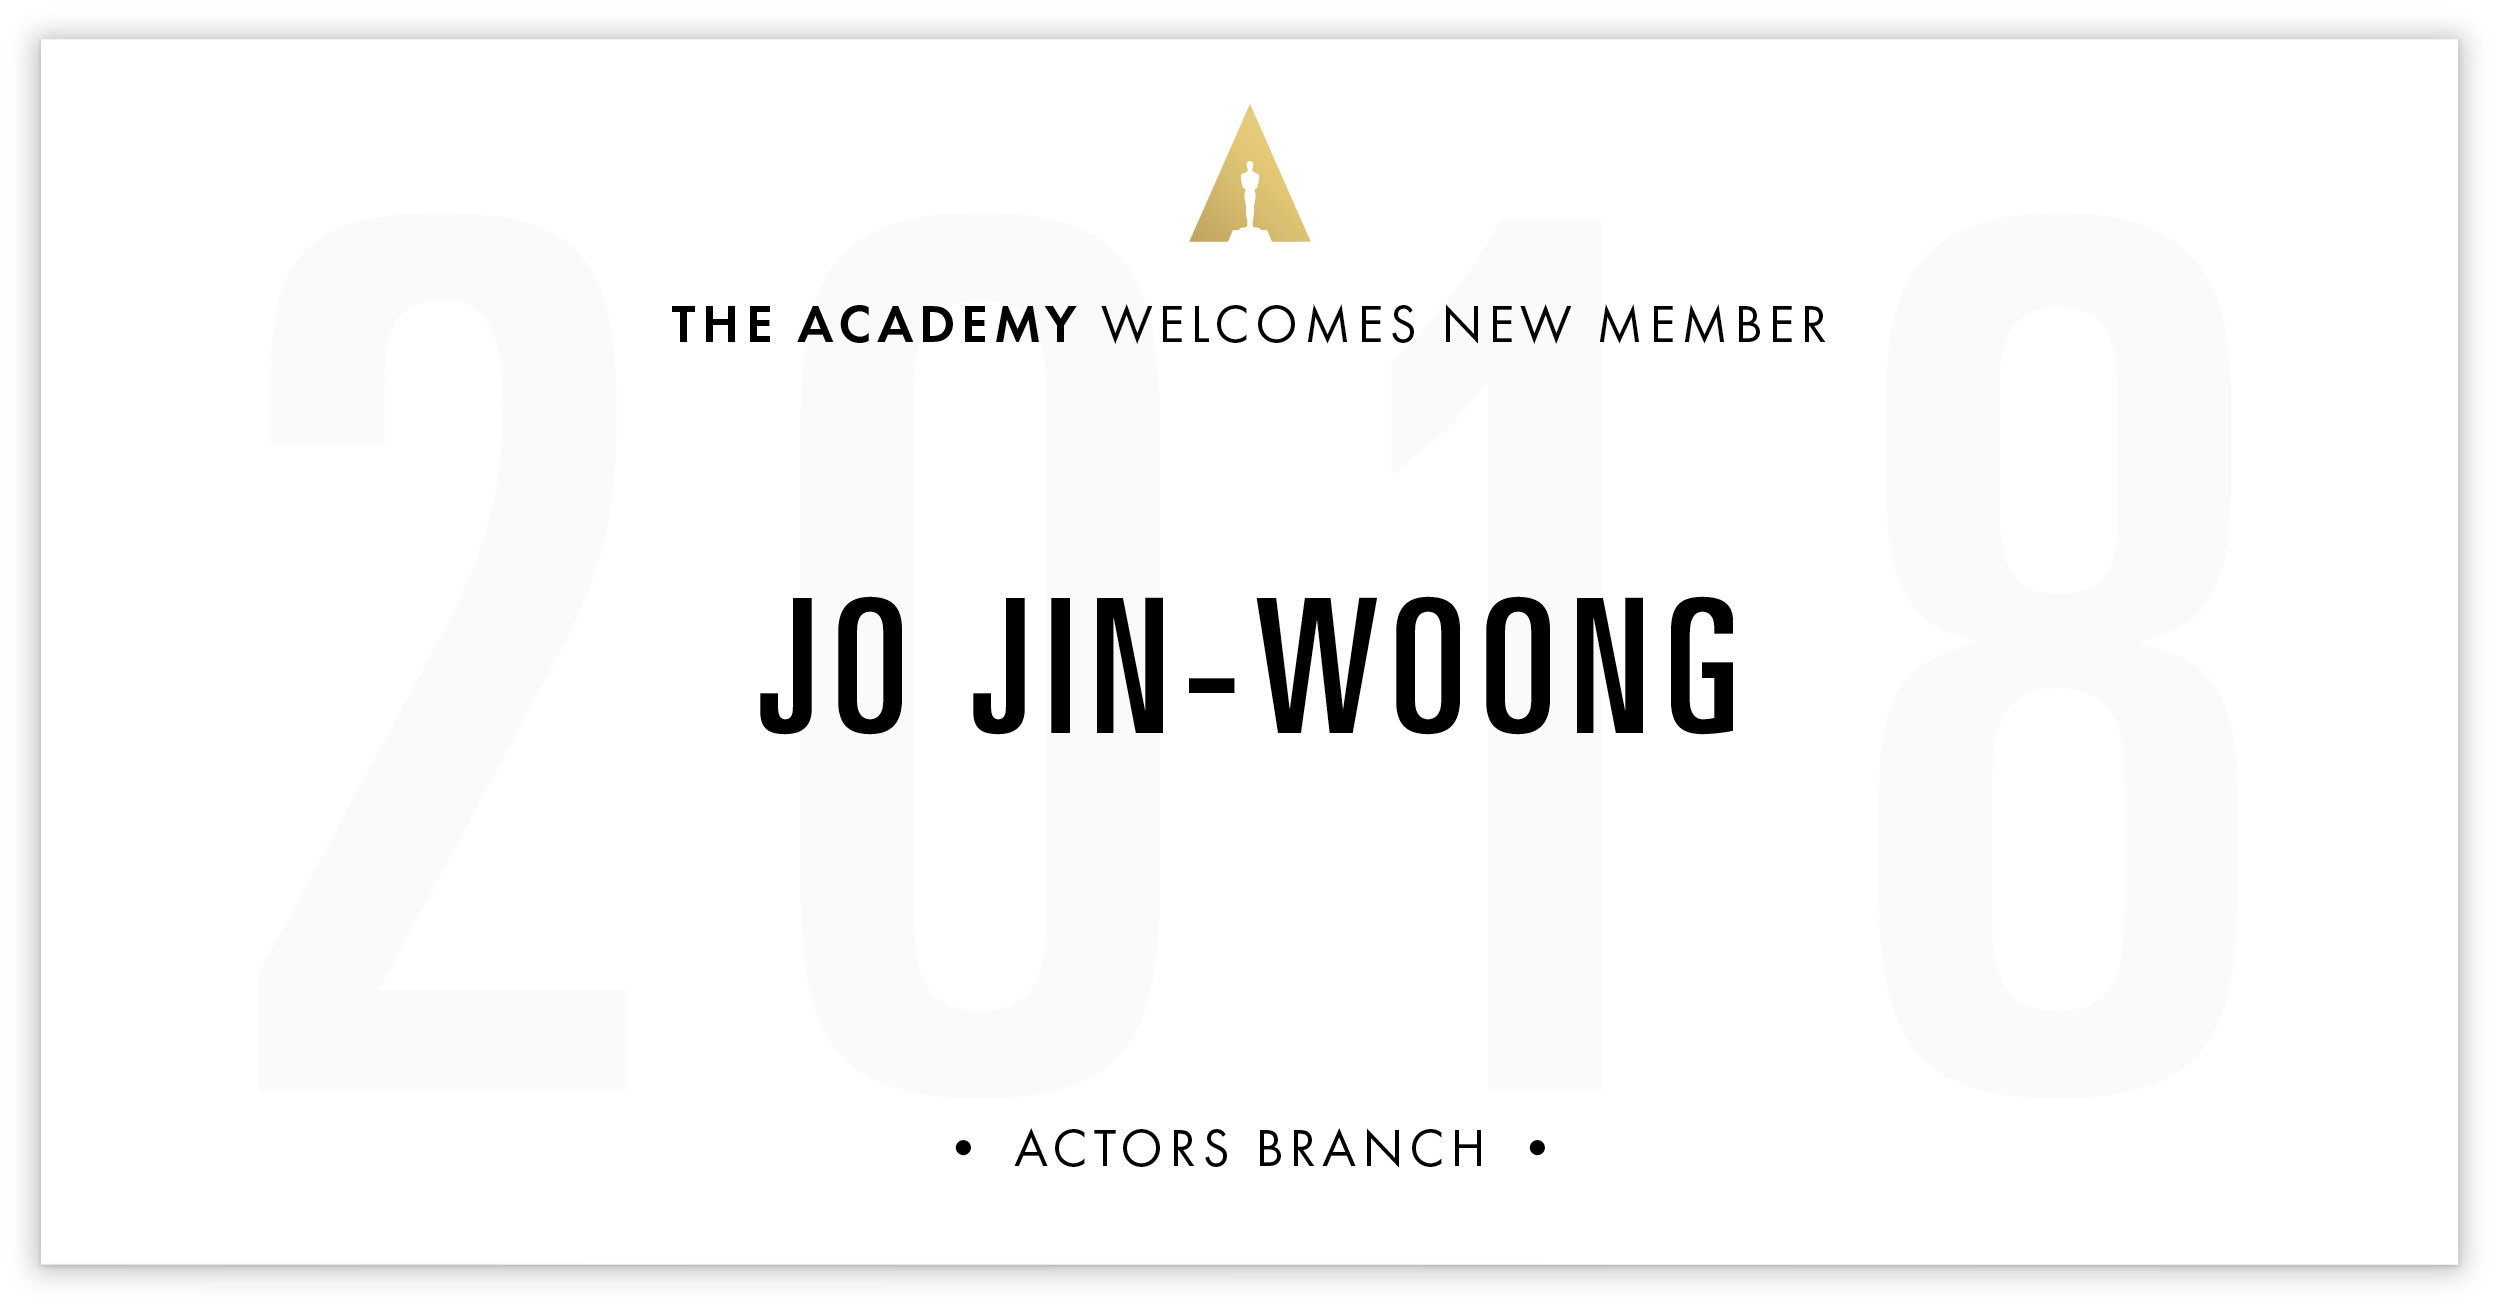 Jo Jin-woong is invited!